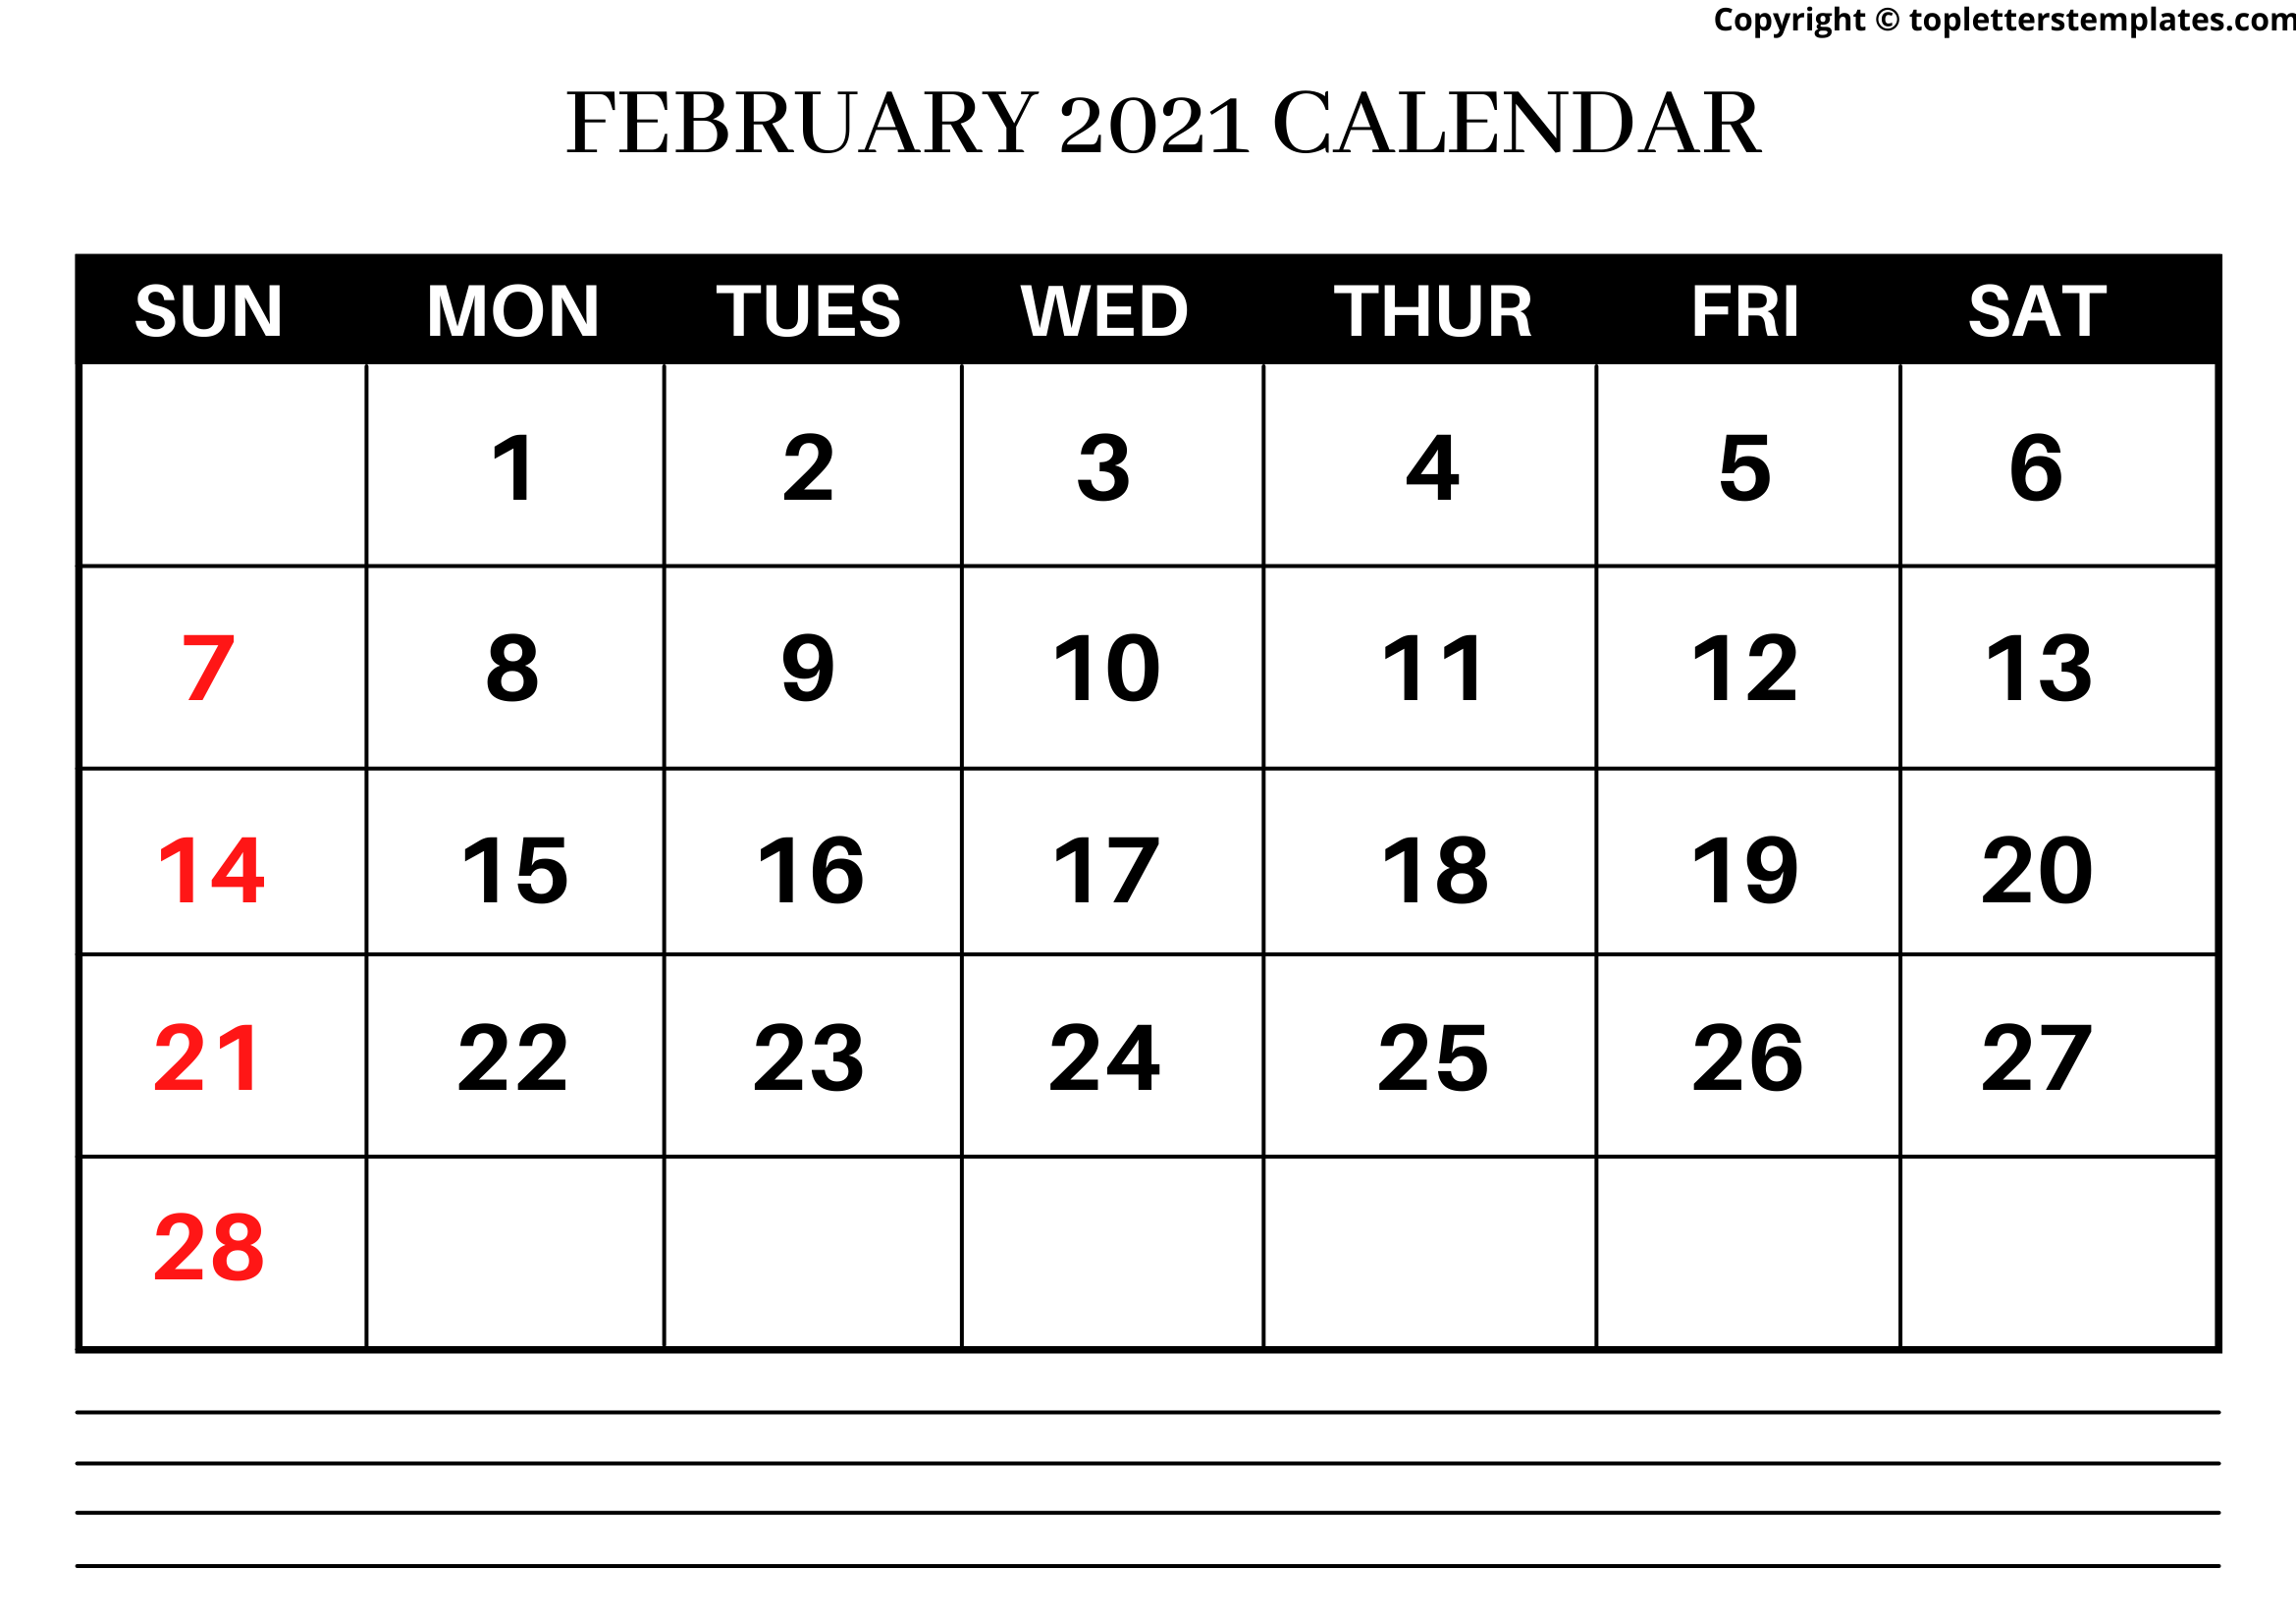 February 2021 Calendar with Notes